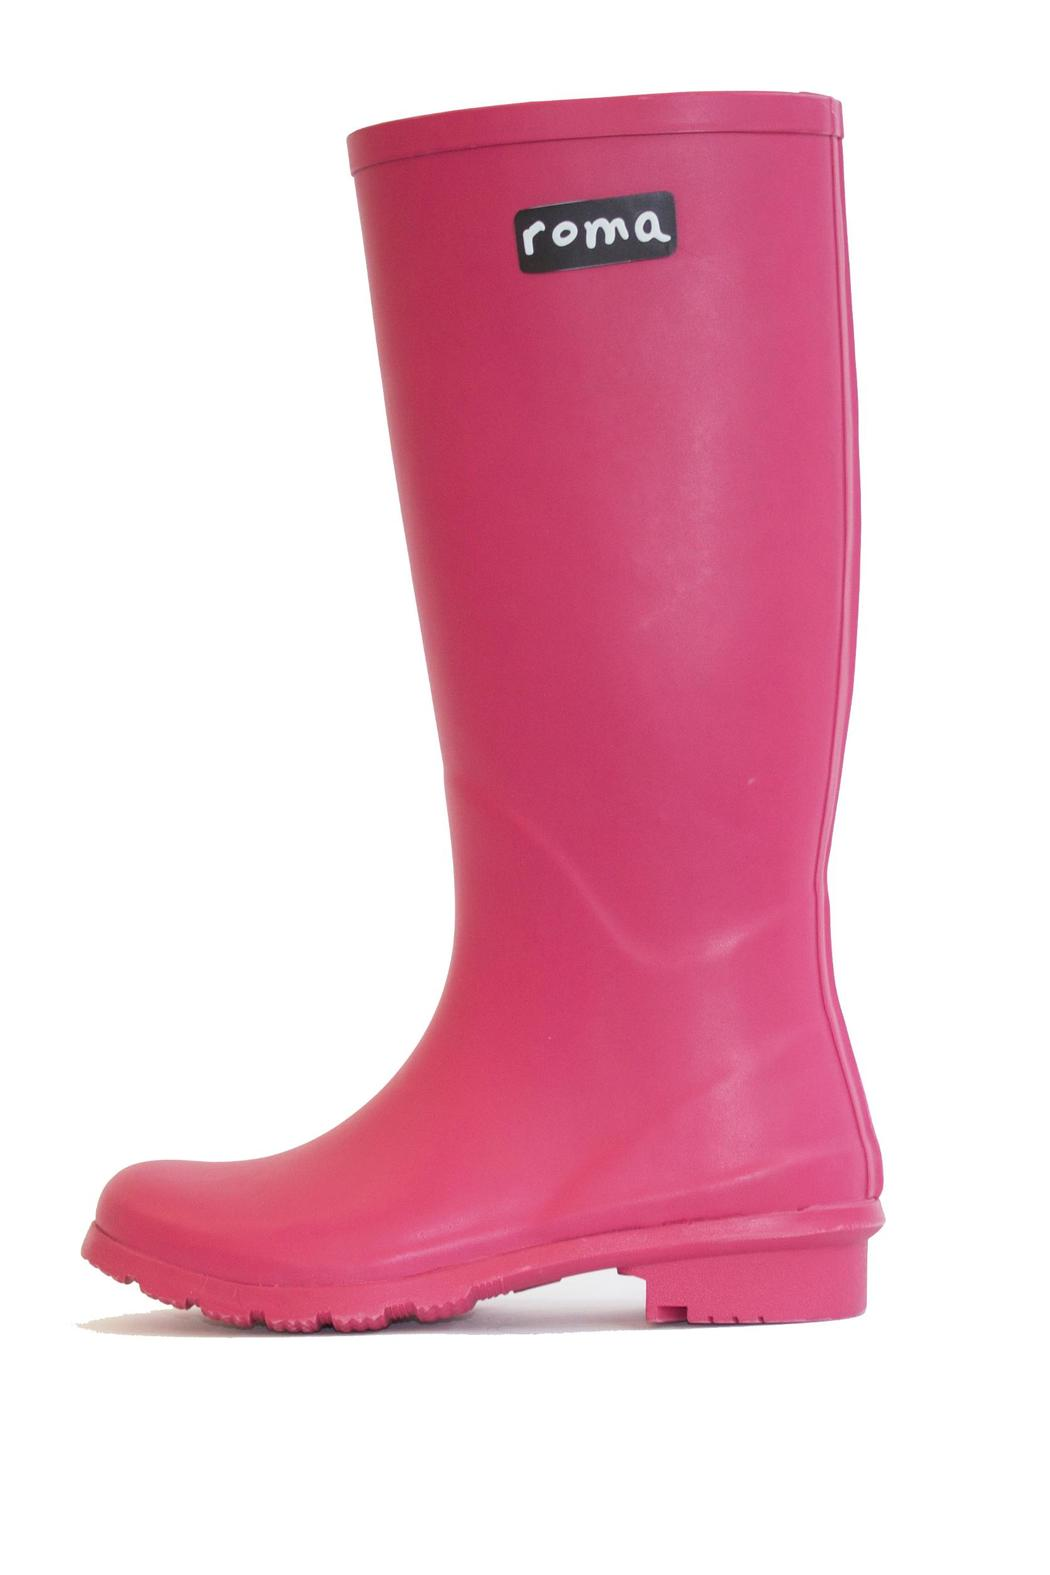 Roma Rain Boots From Columbia By Devine Robin Shoptiques